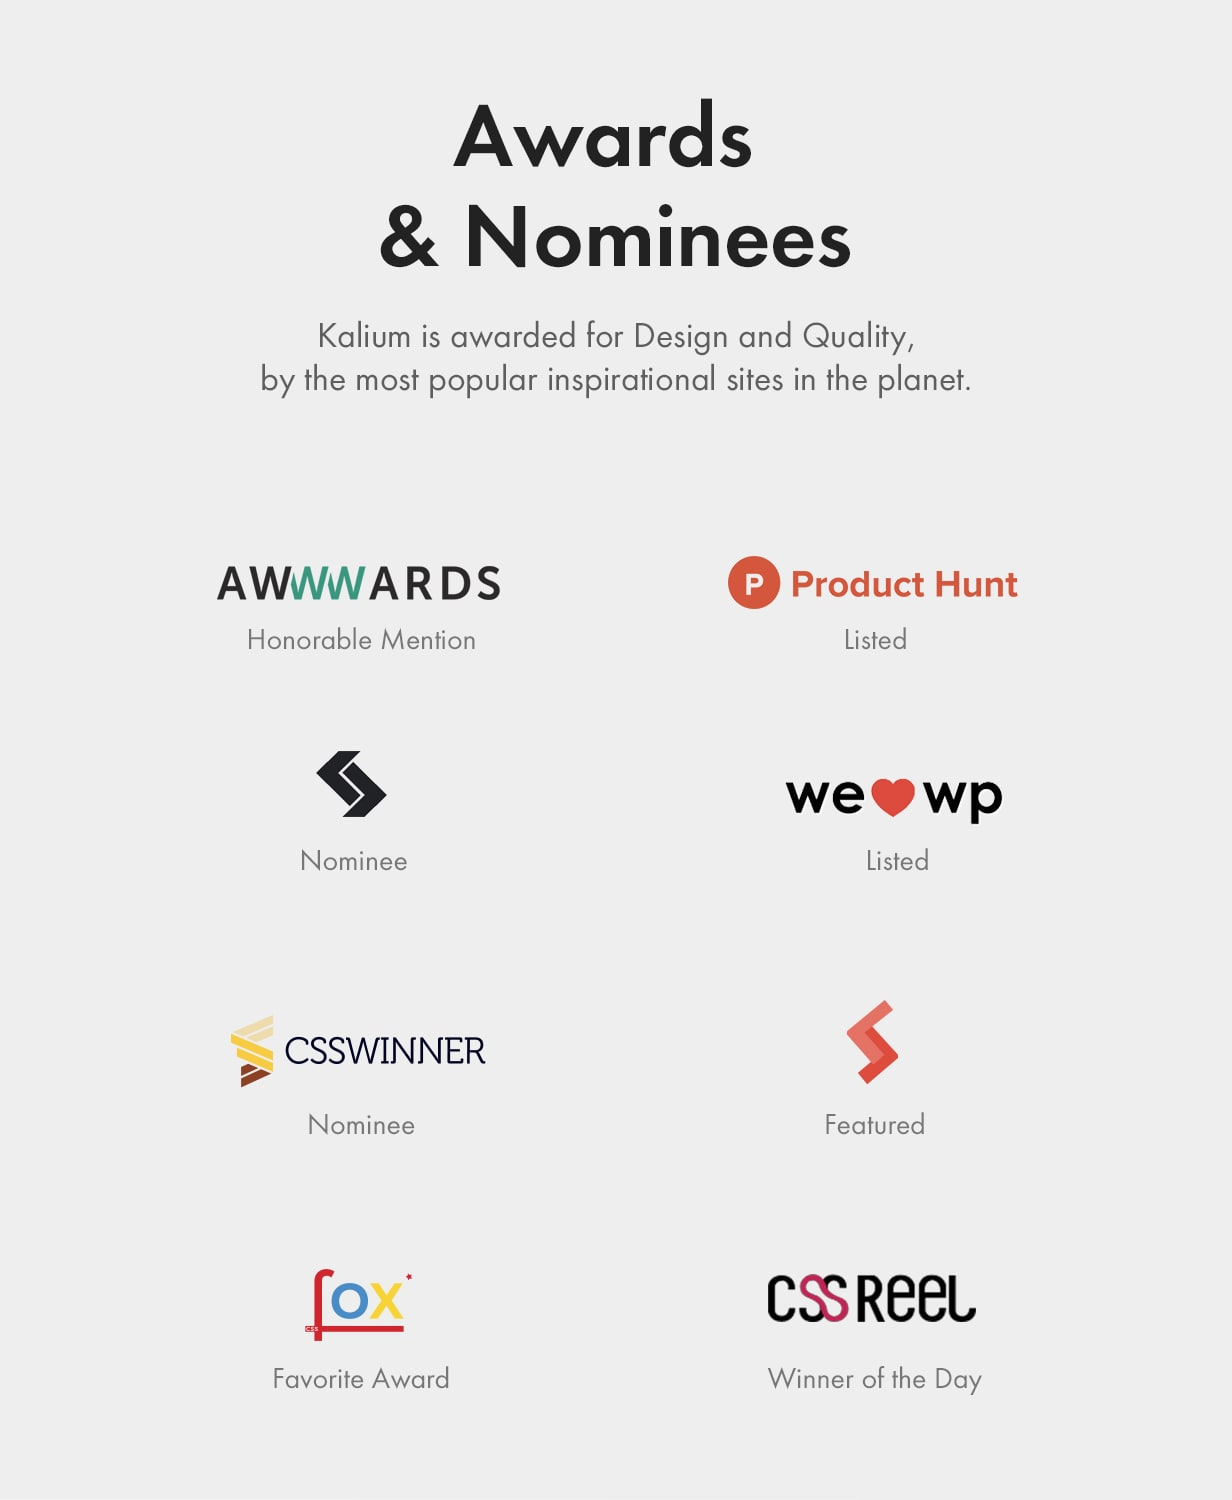 Awards and Nominees awards and nominees - Kalium – Creative Theme for Professionals